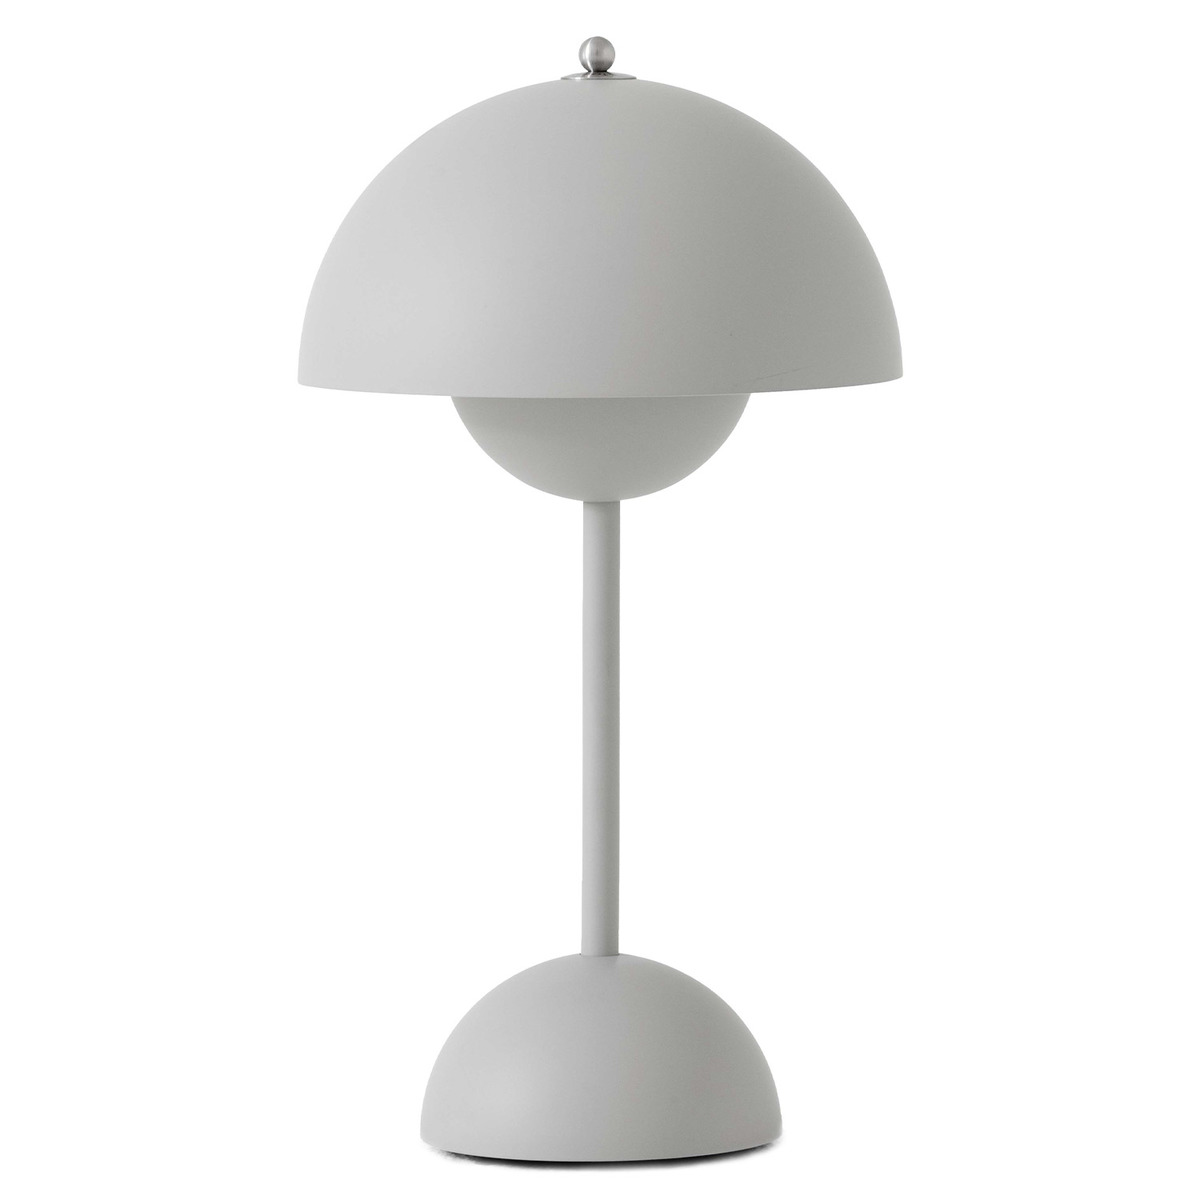 &Tradition Flowerpot VP9 portable table lamp, matt light grey from &Tradition